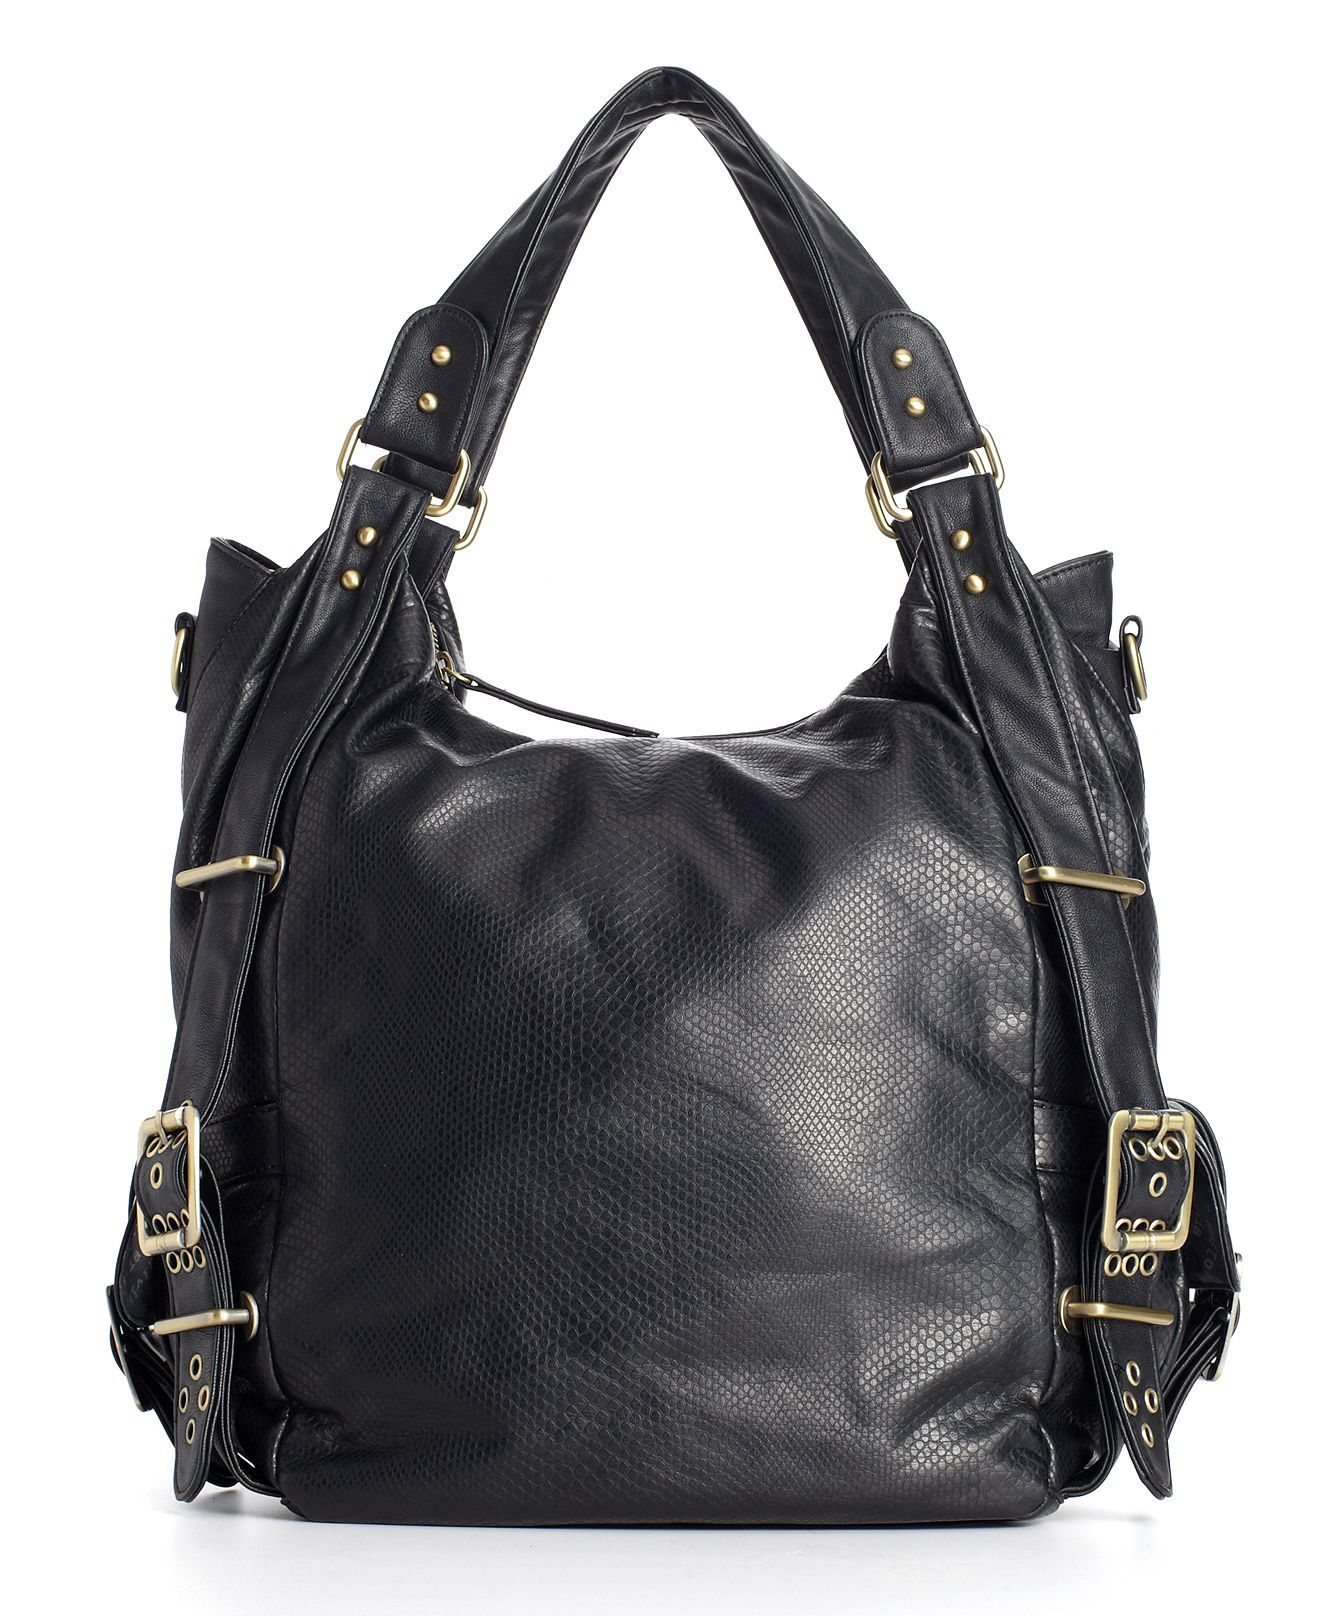 Olivia Joy Handbag Shadow Hobo Bag